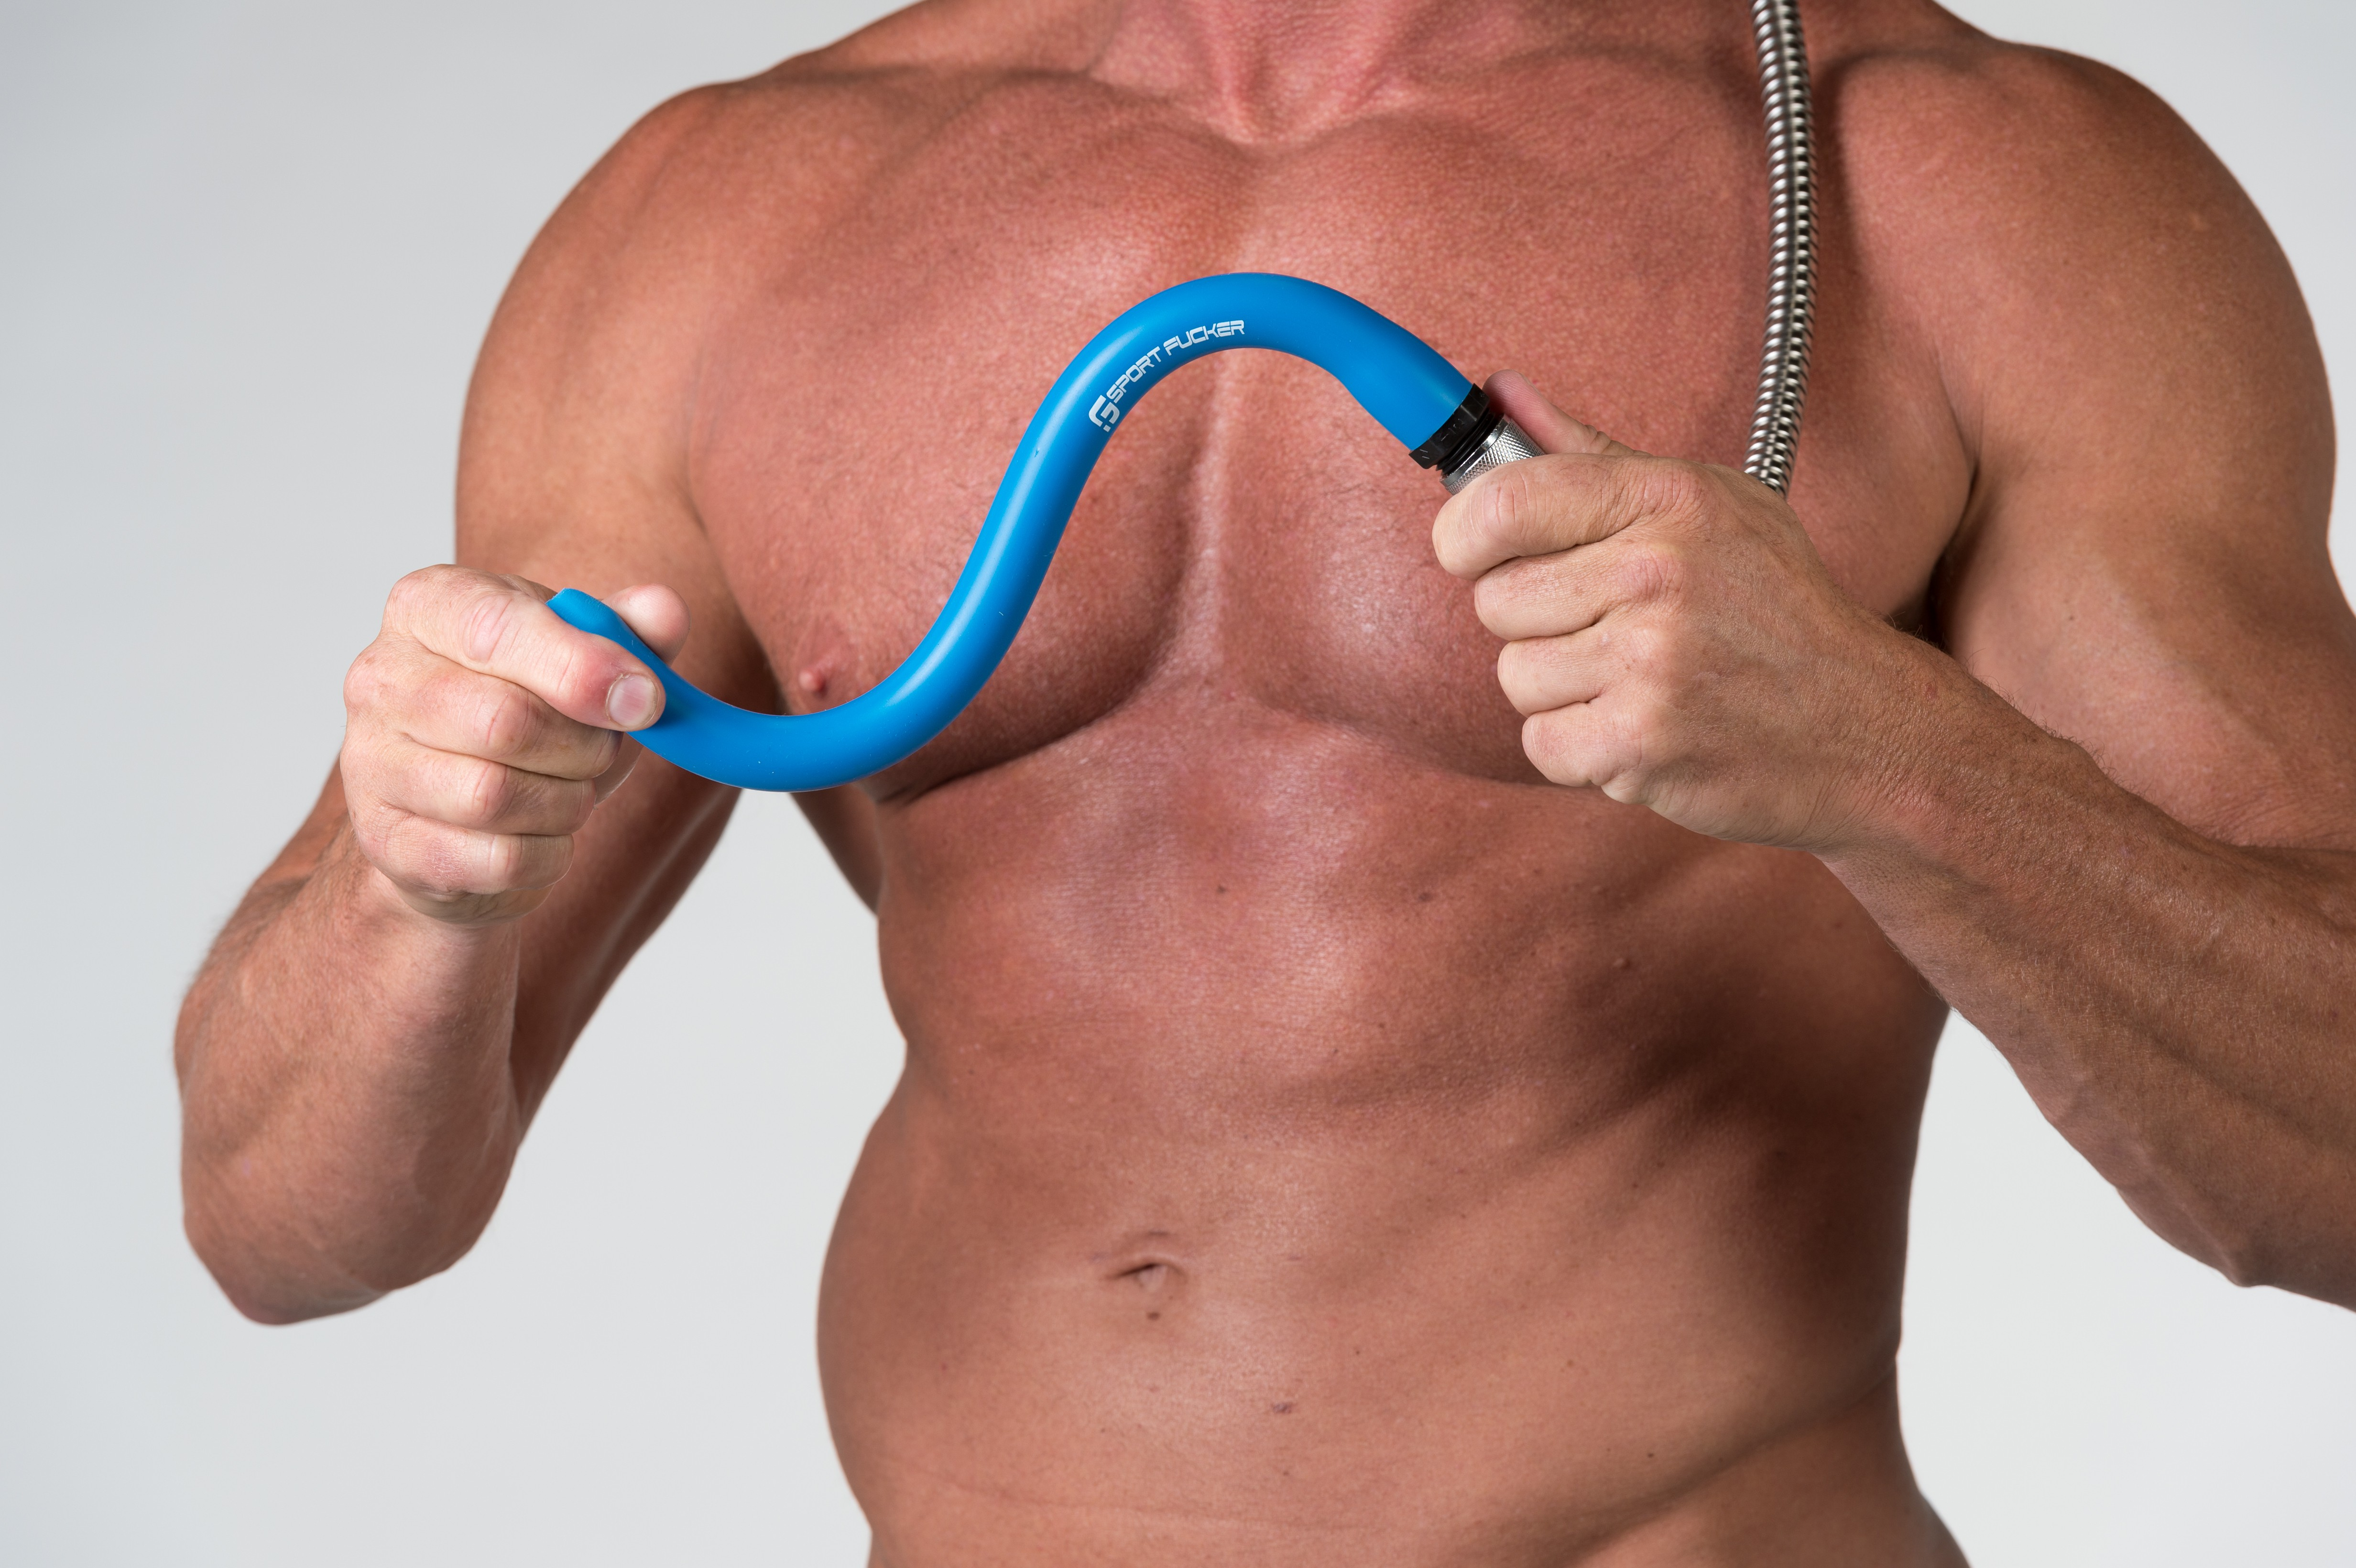 EMBOUT DOUCHE ANAL LOCKER ROOM HOSE SILICONE By sportfucker